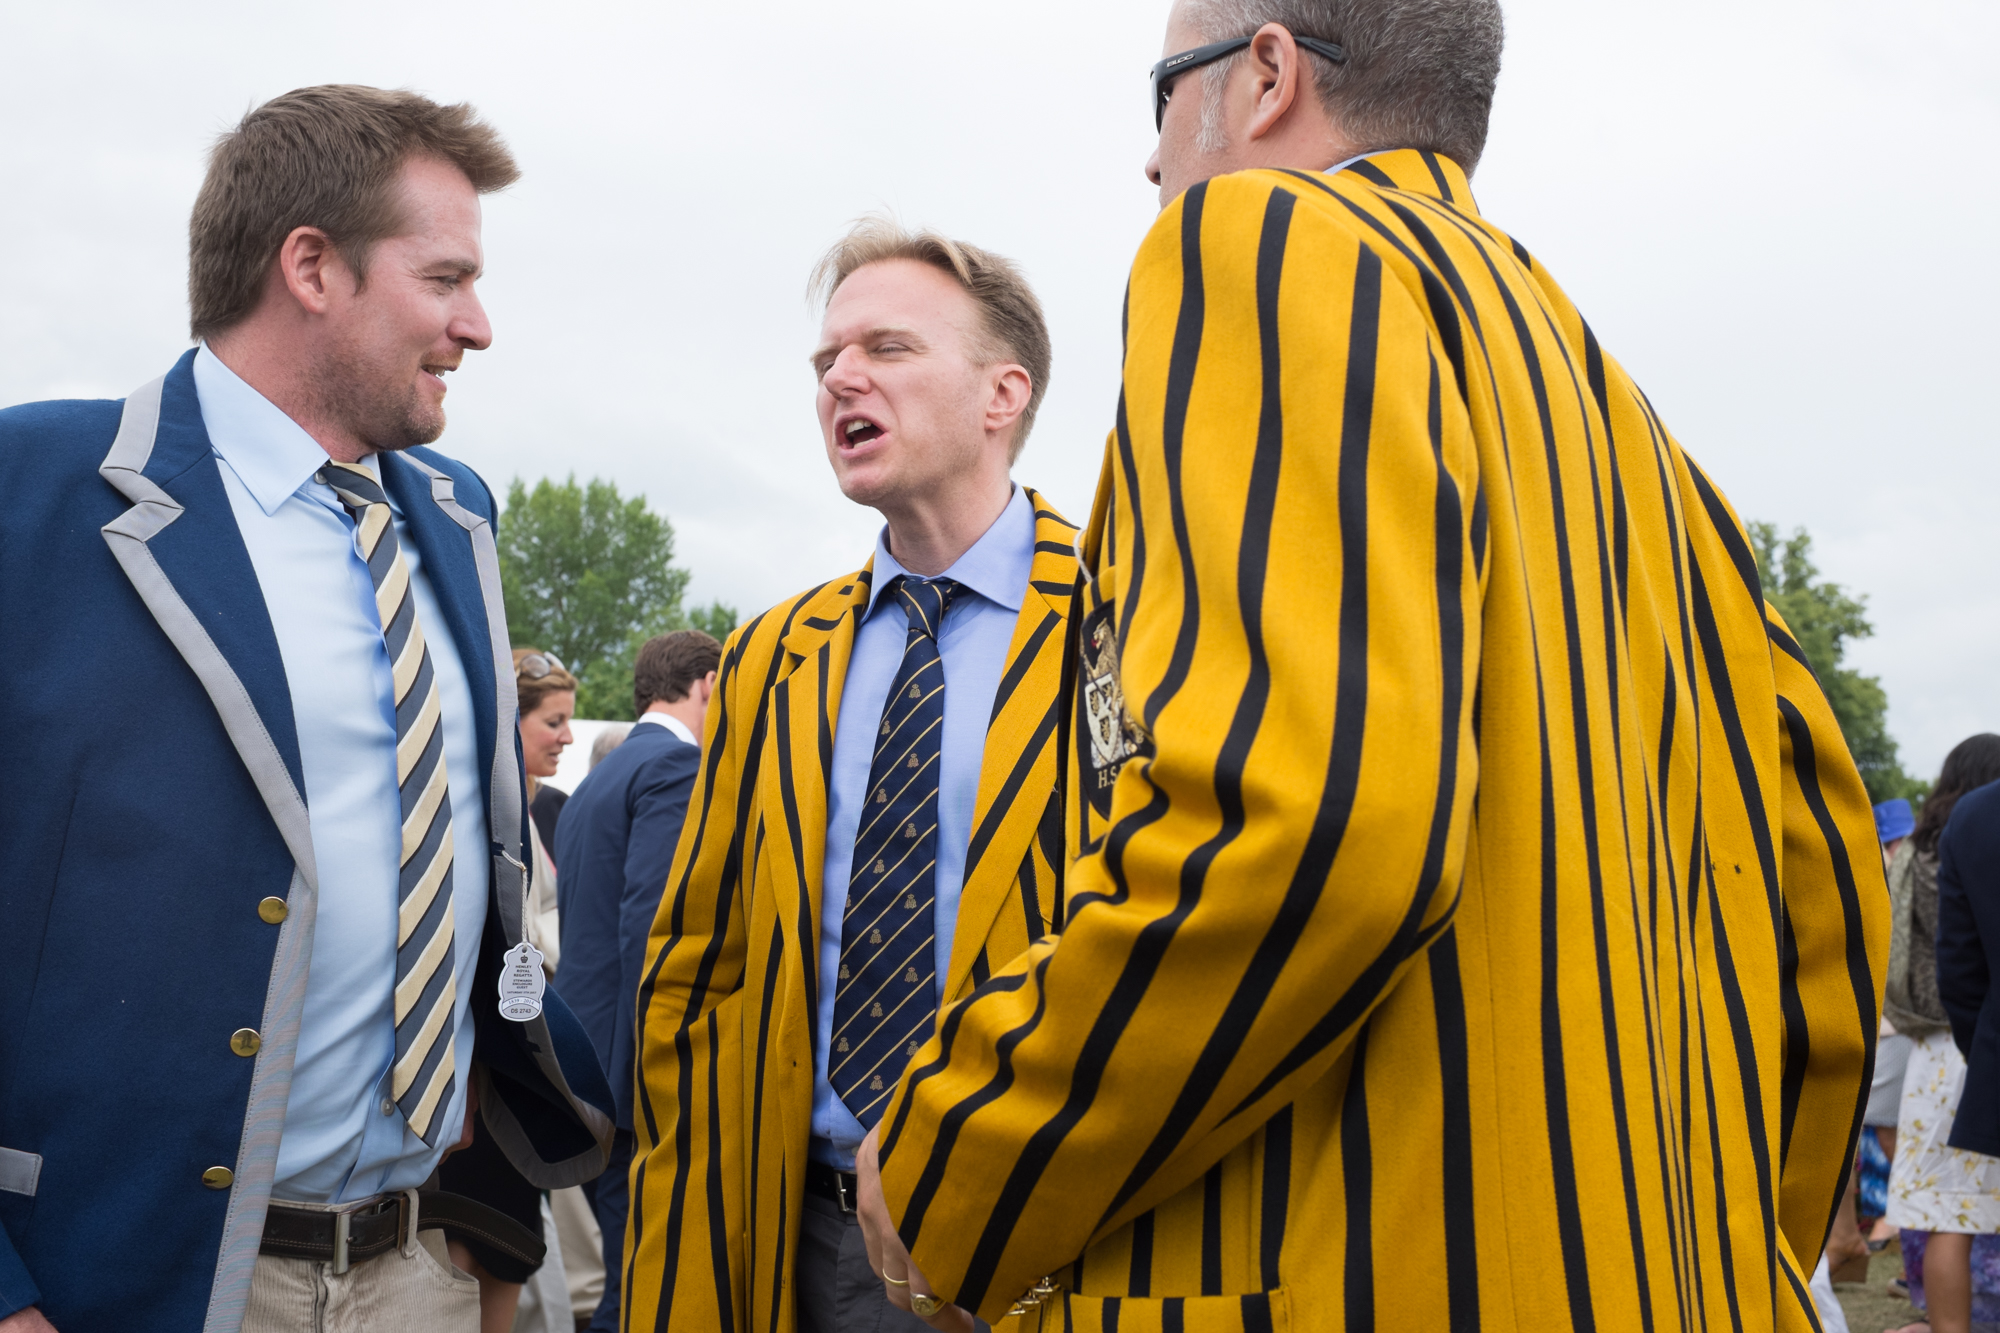 Catching up with friends at Henley Royal Regatta. Lots of spectators have been coming to the regatta for a great many years, and still wear their club colours with pride.